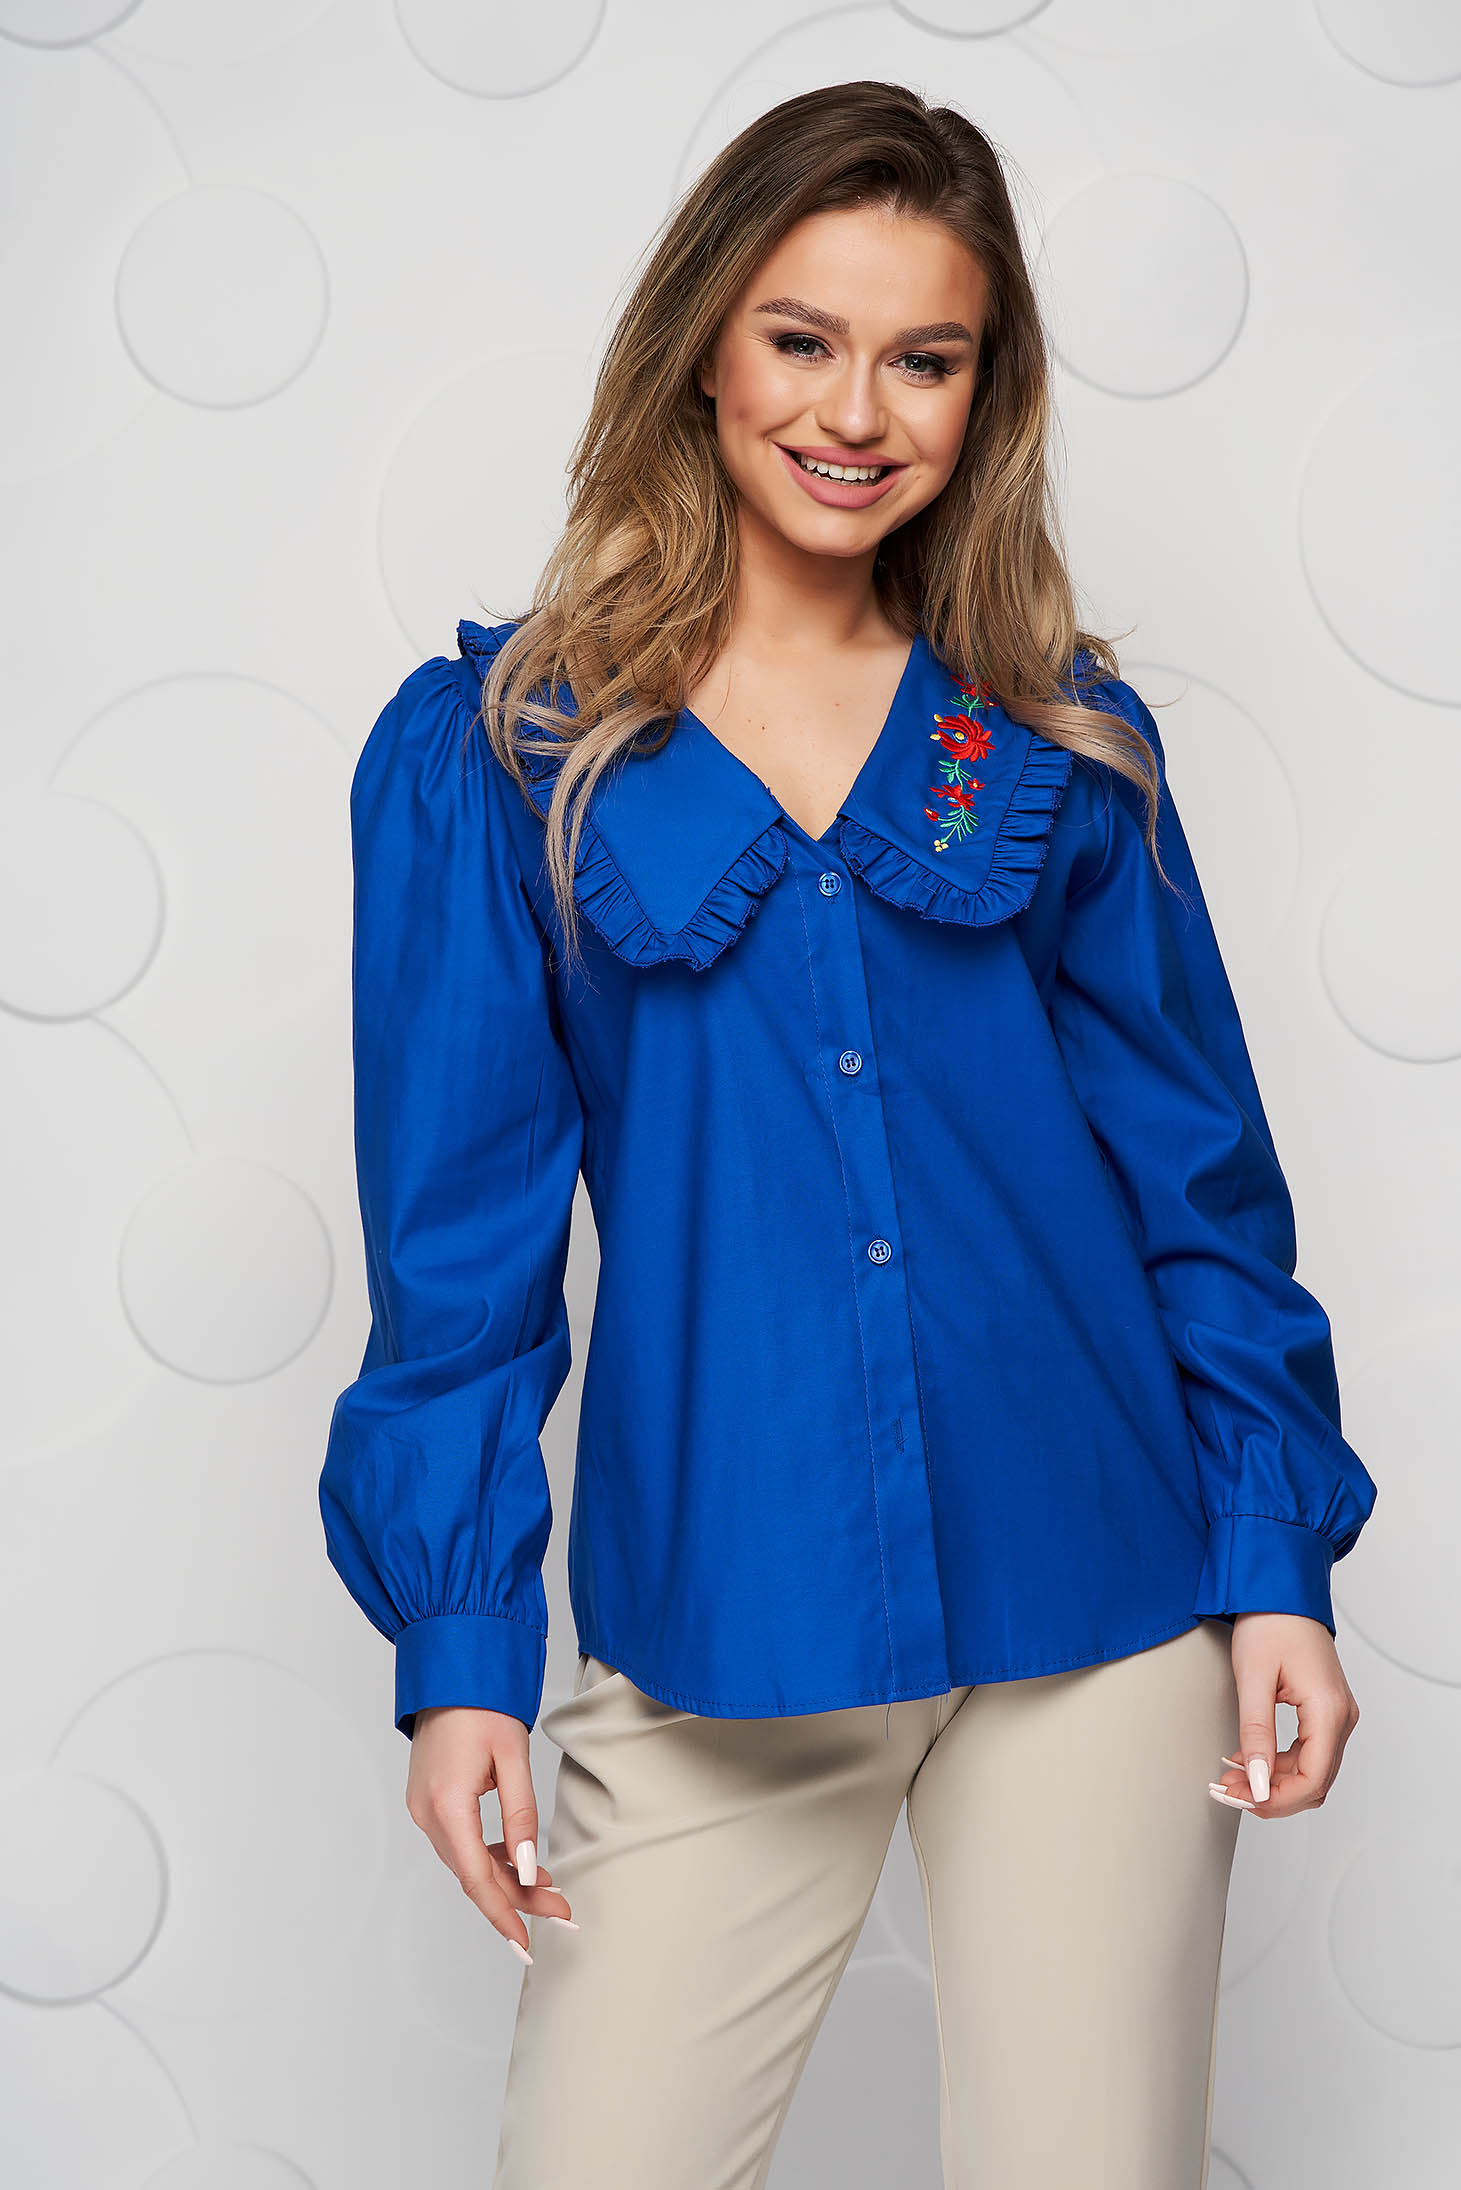 Blue women`s shirt cotton loose fit ruffled collar embroidered